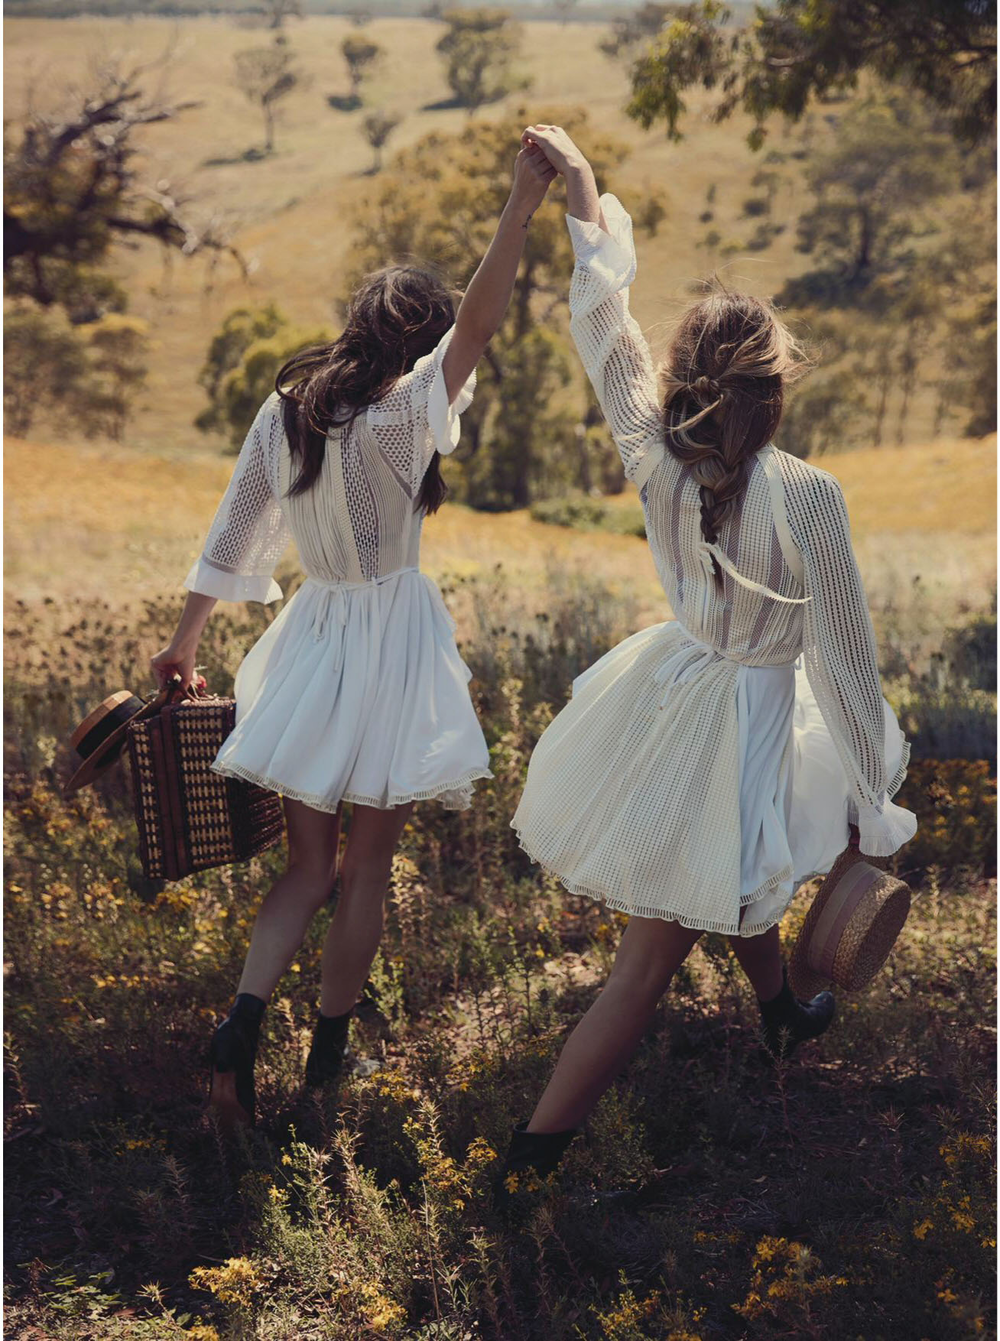 02698-teresa-palmer-phoebe-tonkin-by-will-davidson-for-vogue-australia-march-2015-3.png